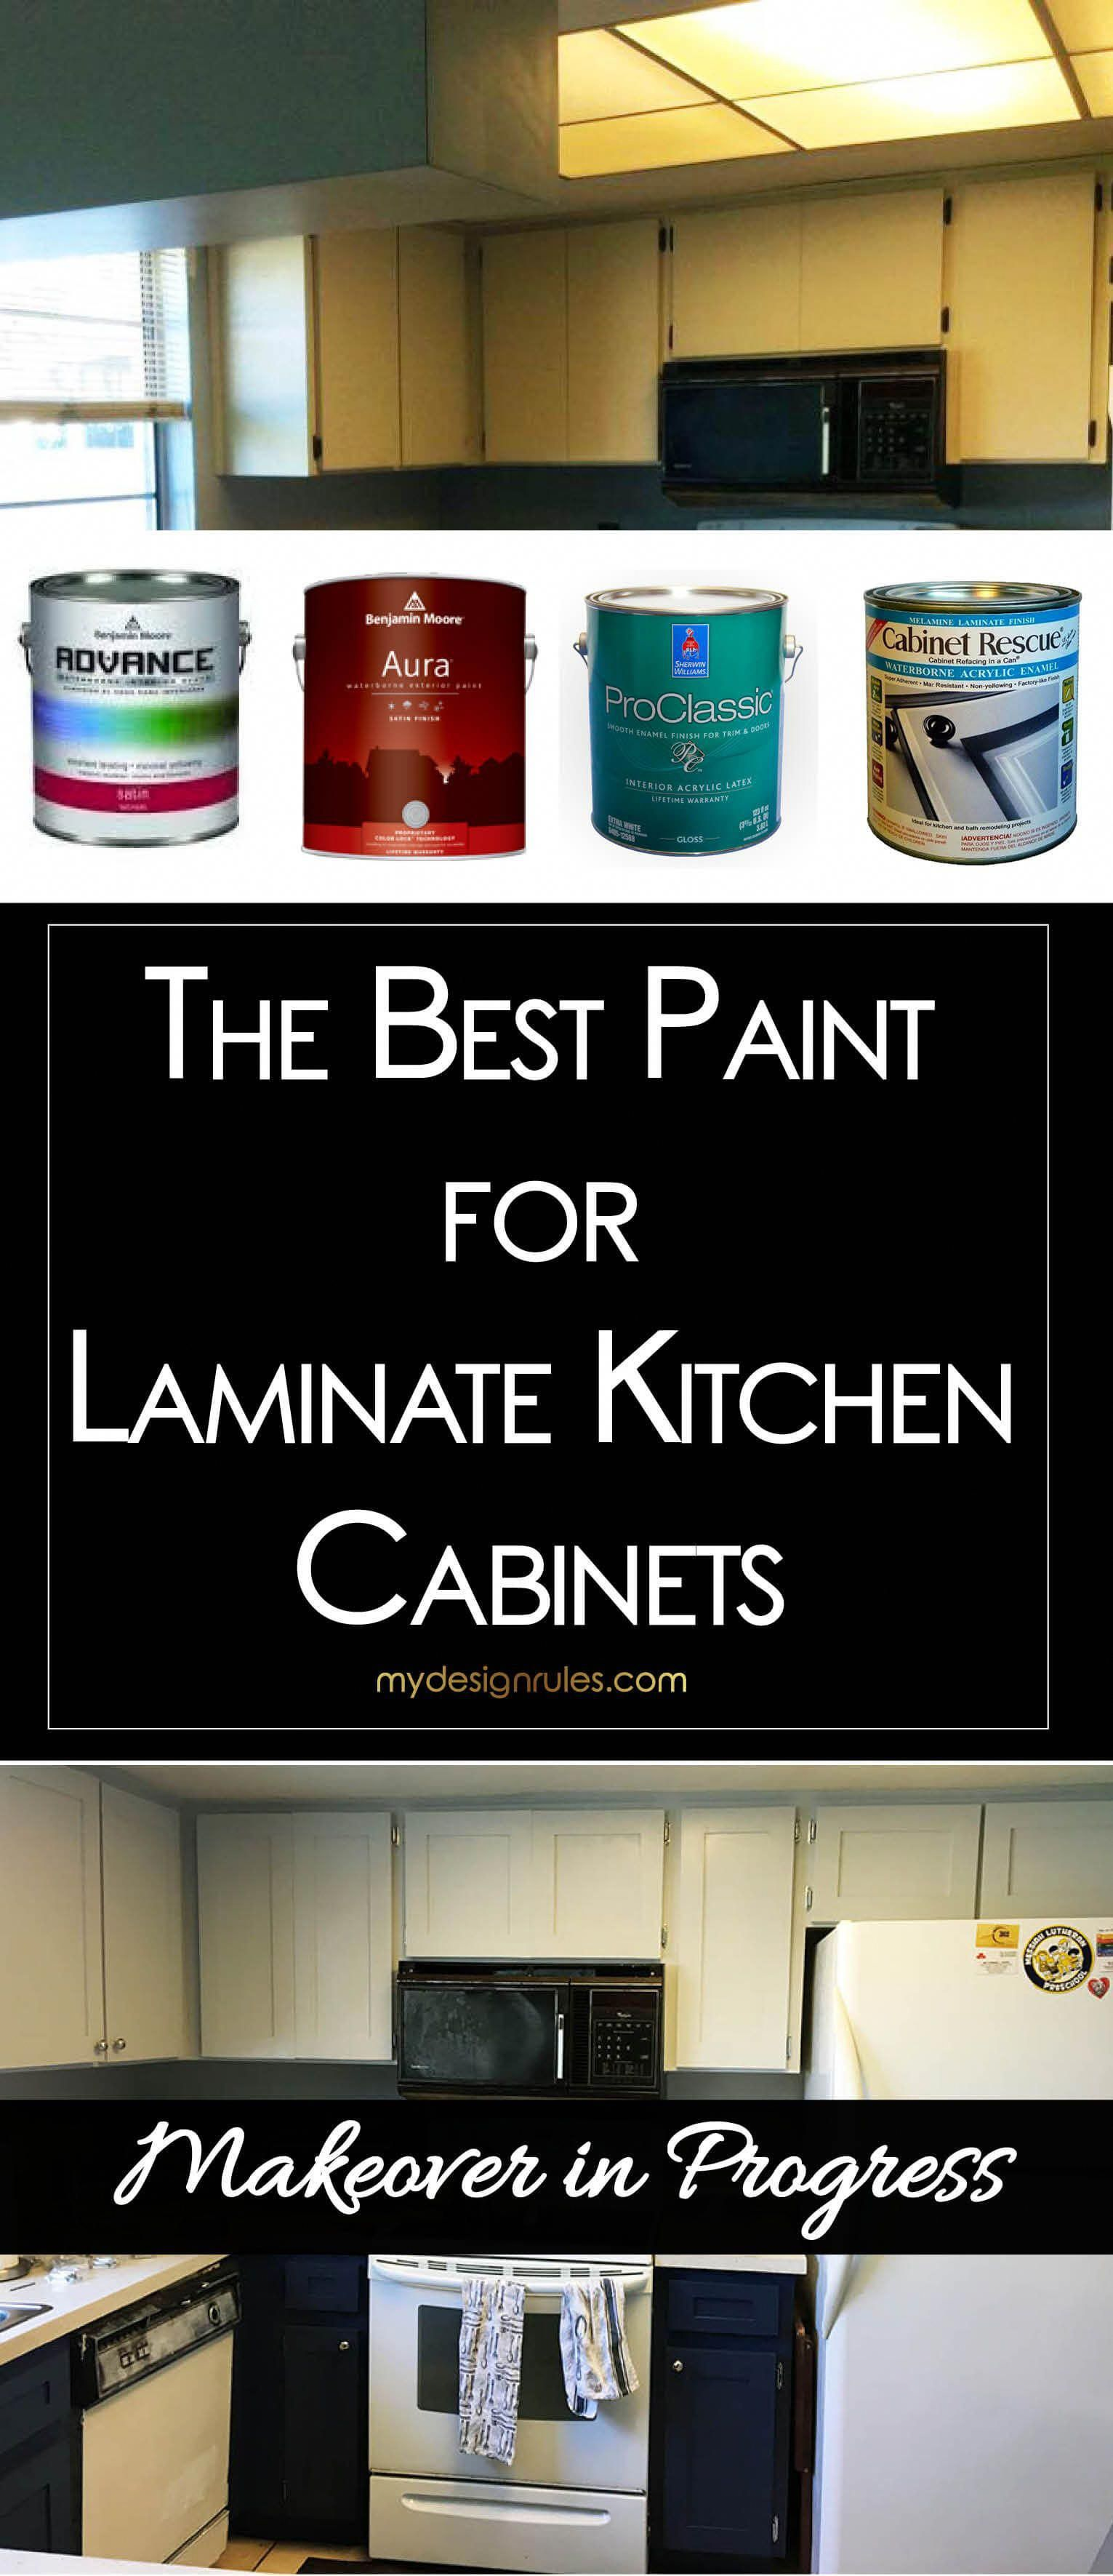 amazing and wonderful best paint kitchen cabinets | I painted my 80s laminate kitchen cabinets. Find the best ...